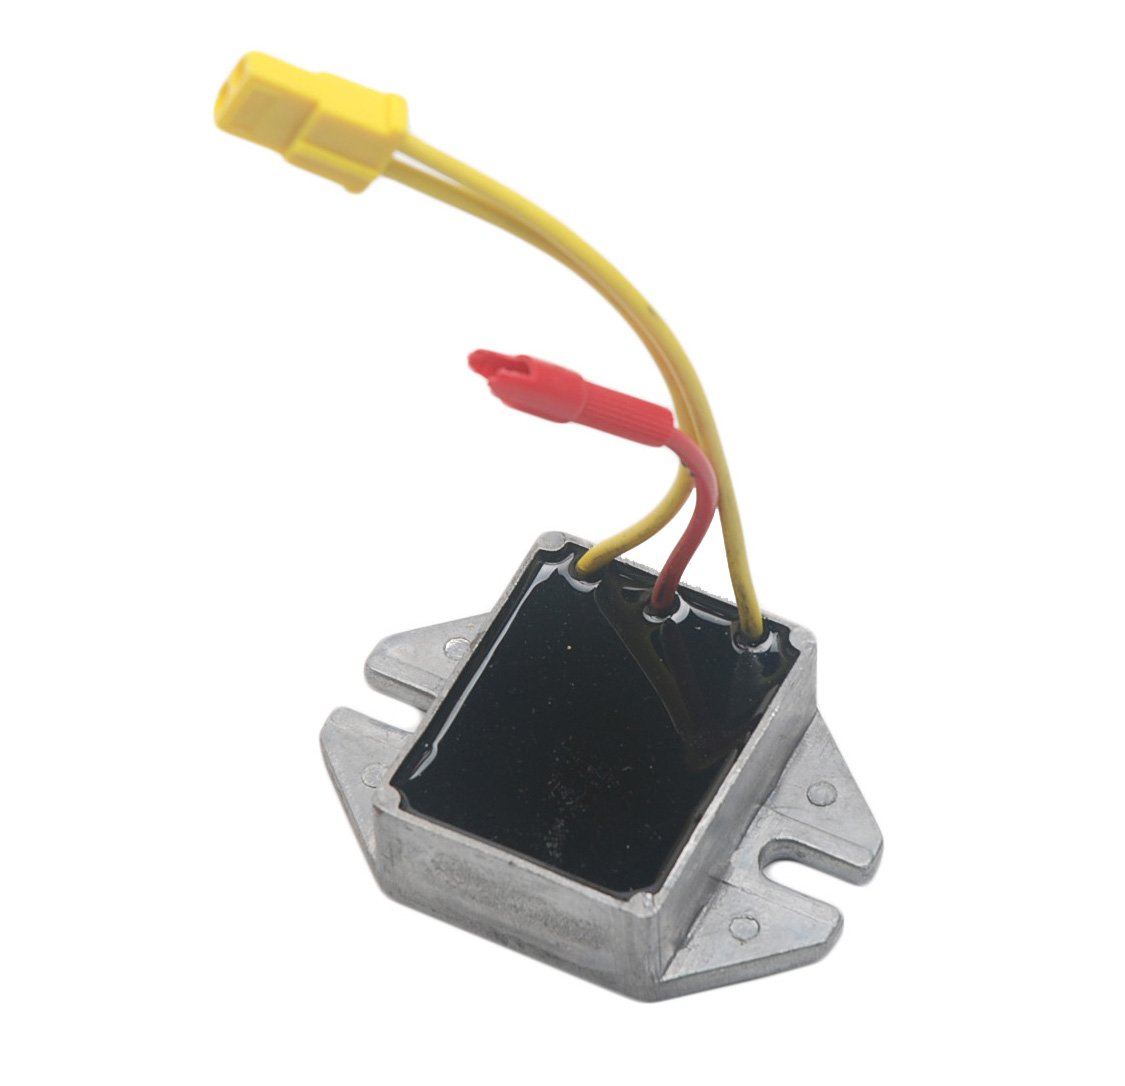 HIFROM 394890, 393374, 691185, 797375, 797182 Replace Voltage Regulator for Briggs and Stratton